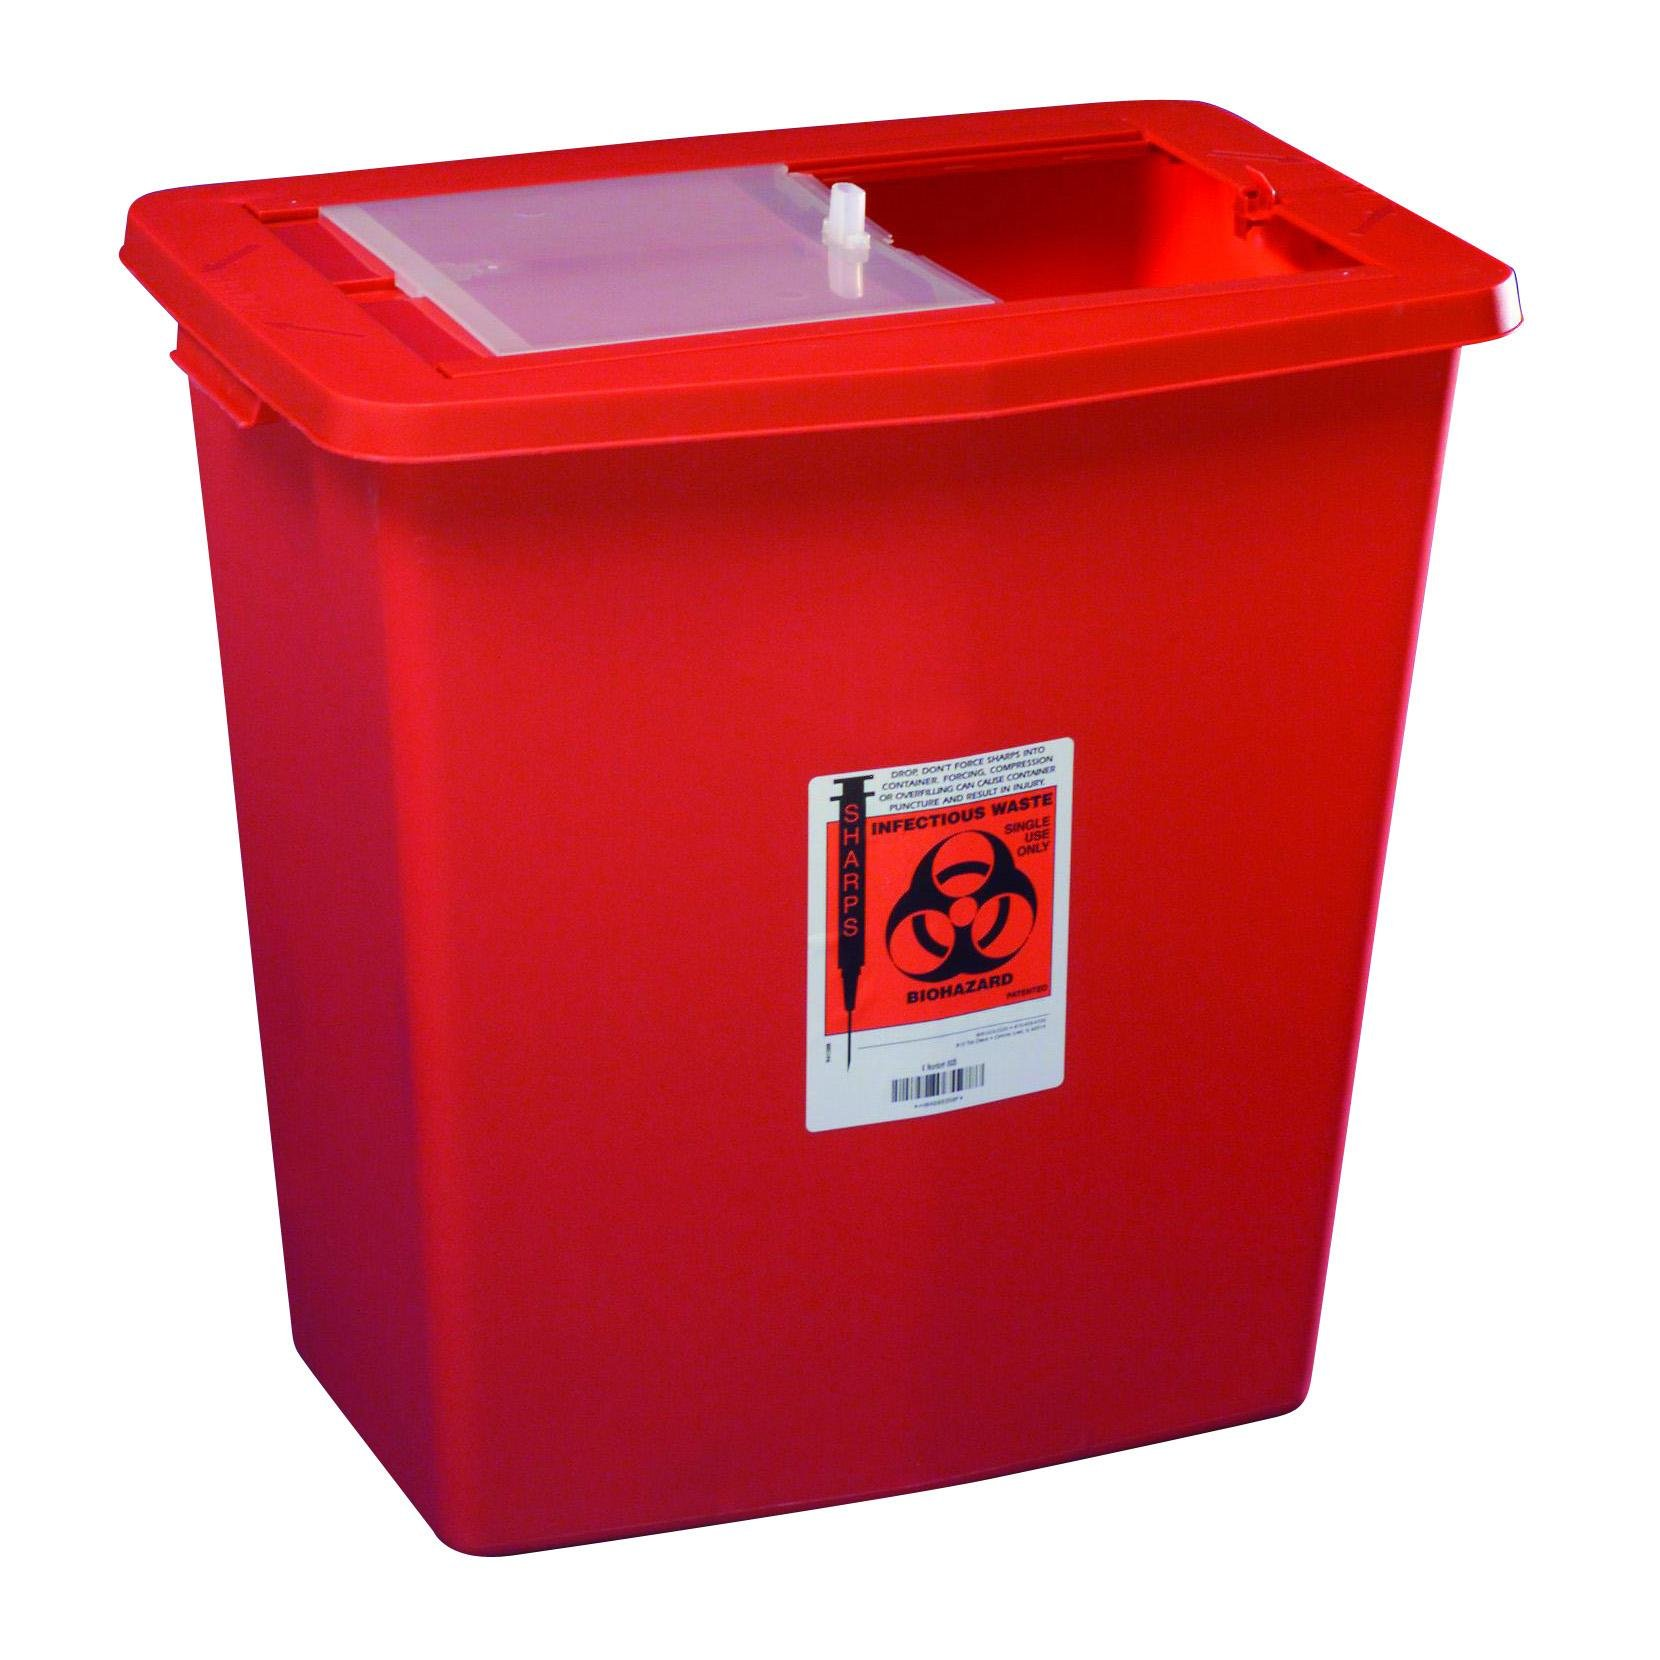 Sharps Container, 12 Gallon Red W/Sliding Lid, 1 ea by Kendall/Covidien